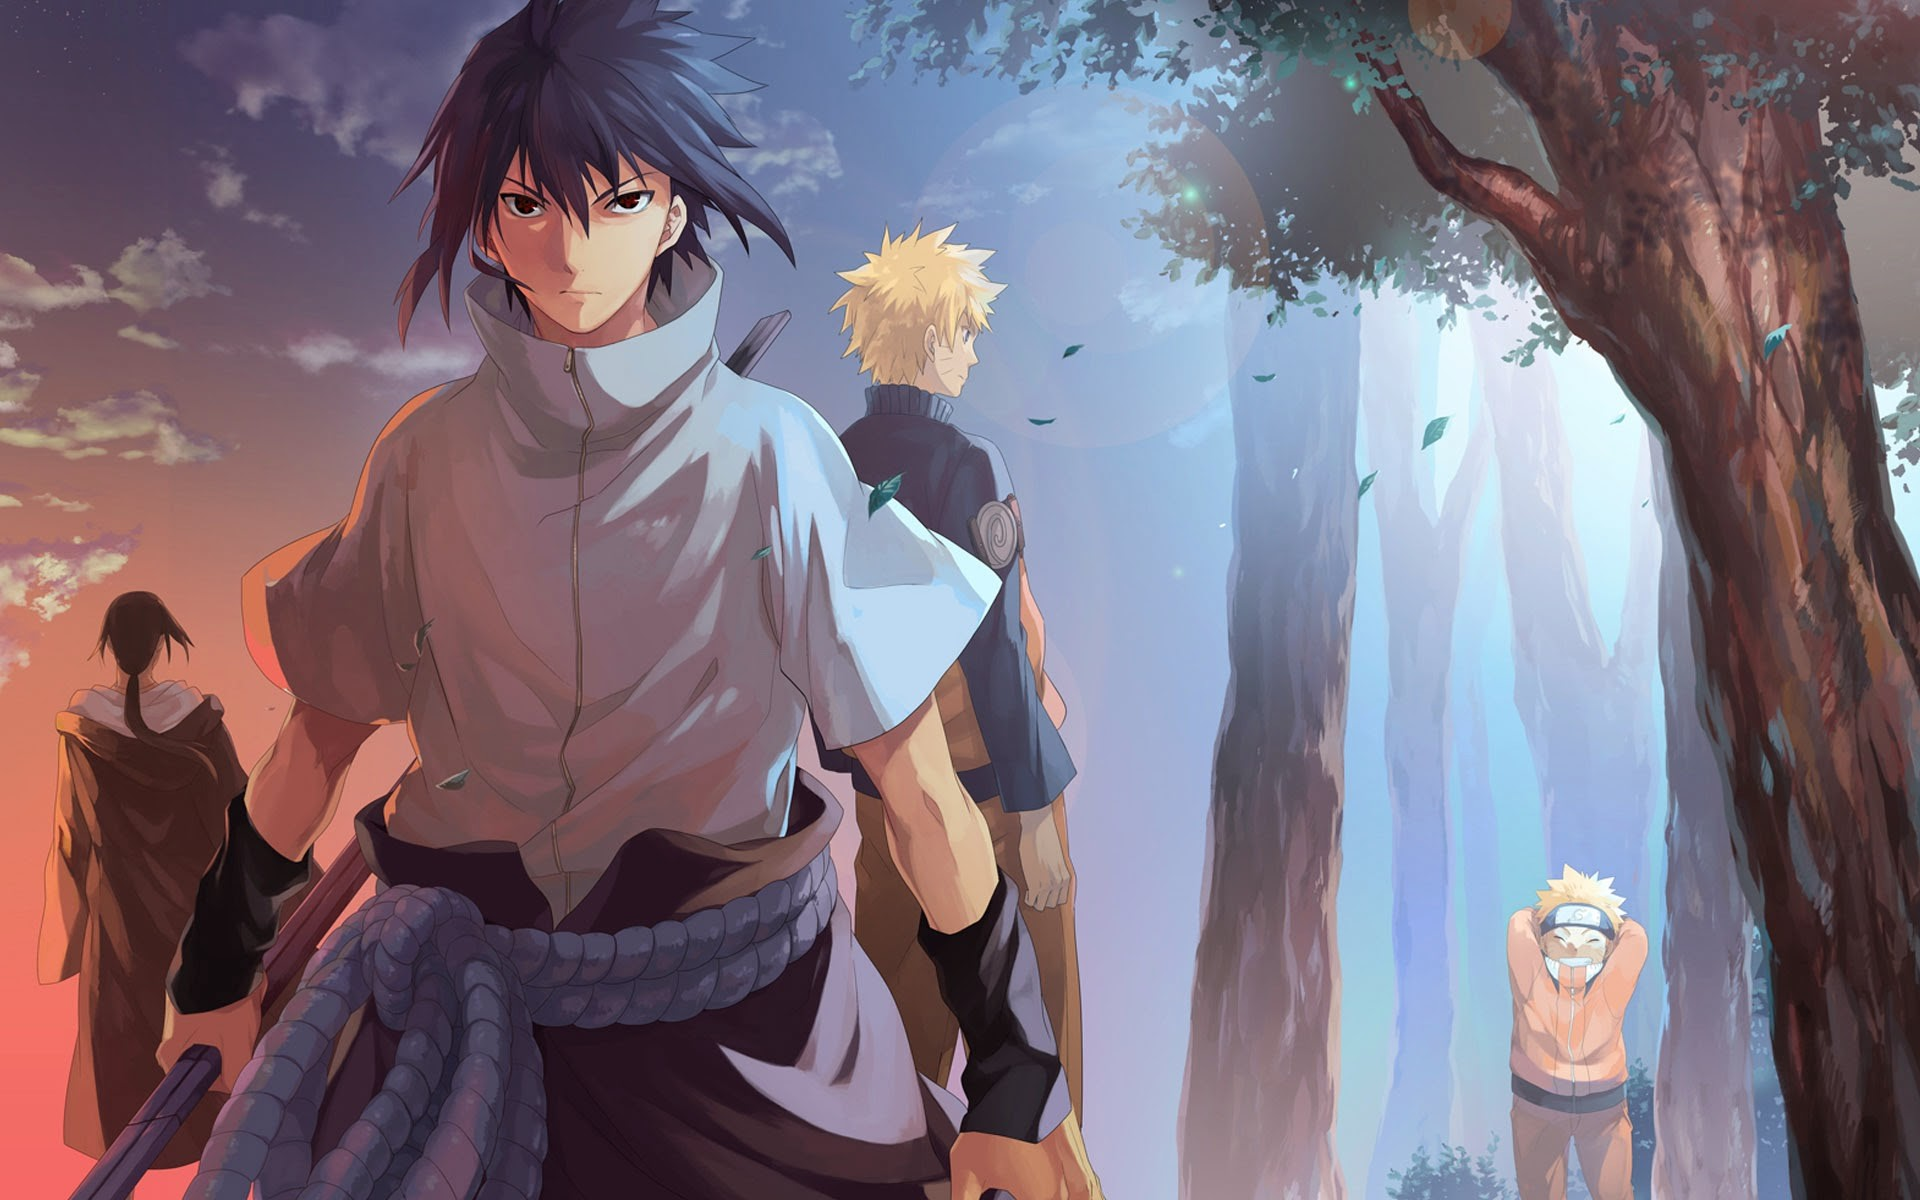 1920x1200 Sasuke Itachi Uchiha Brothers Naruto Anime Hd Wallpaper 7r